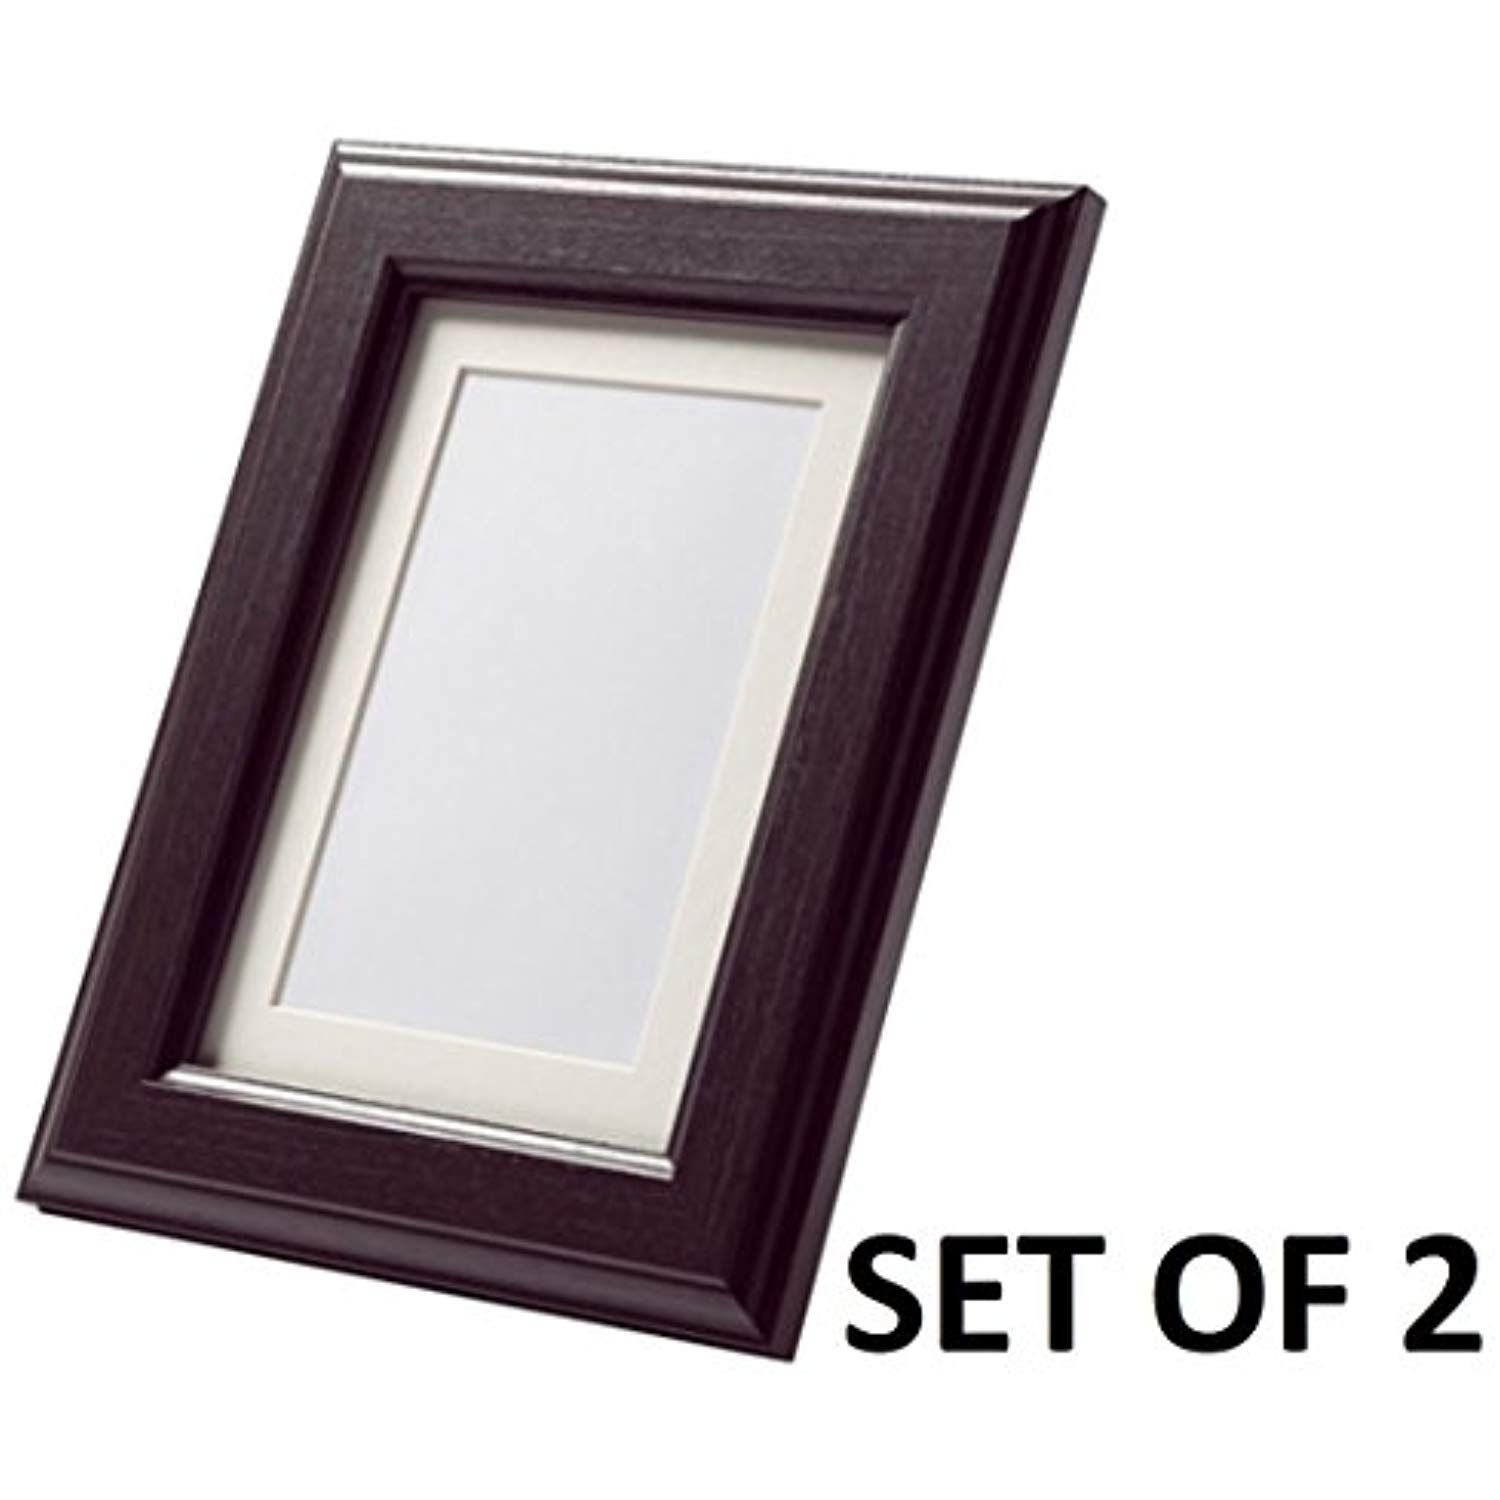 Ikea Virserum 8 X 10 Picture Frame 2 Dark Brown You Can Find More Details By Visiting The Image Link This Is An Affili Picture Frames 10 Picture Frame